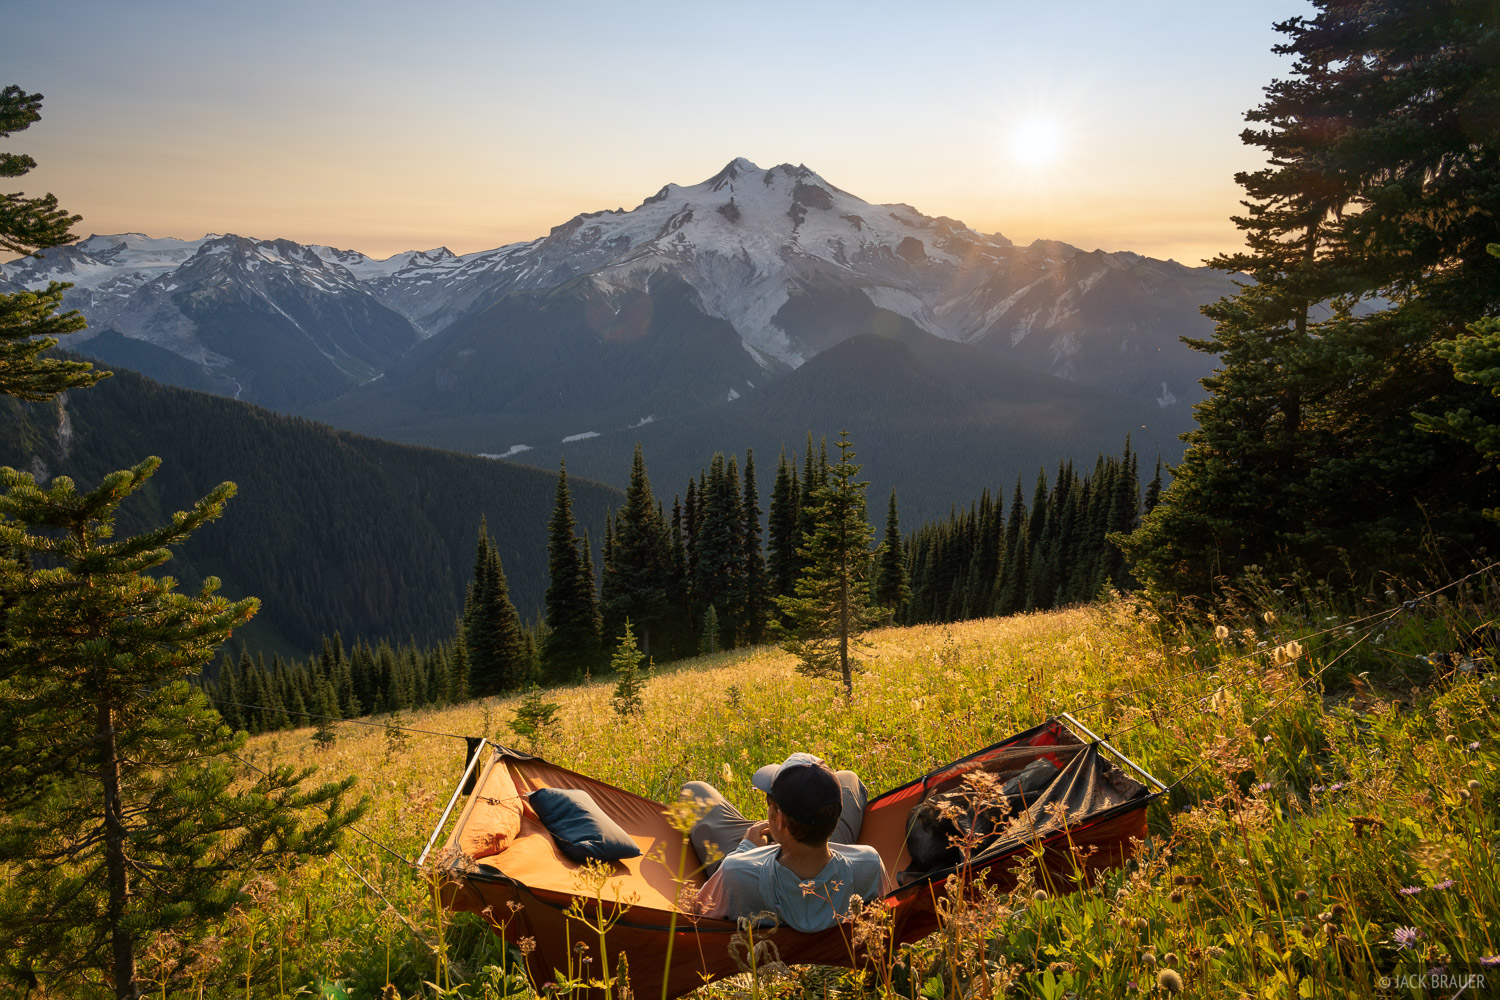 Hanging out in my hammock at a high meadow with a big view of Glacier Peak.